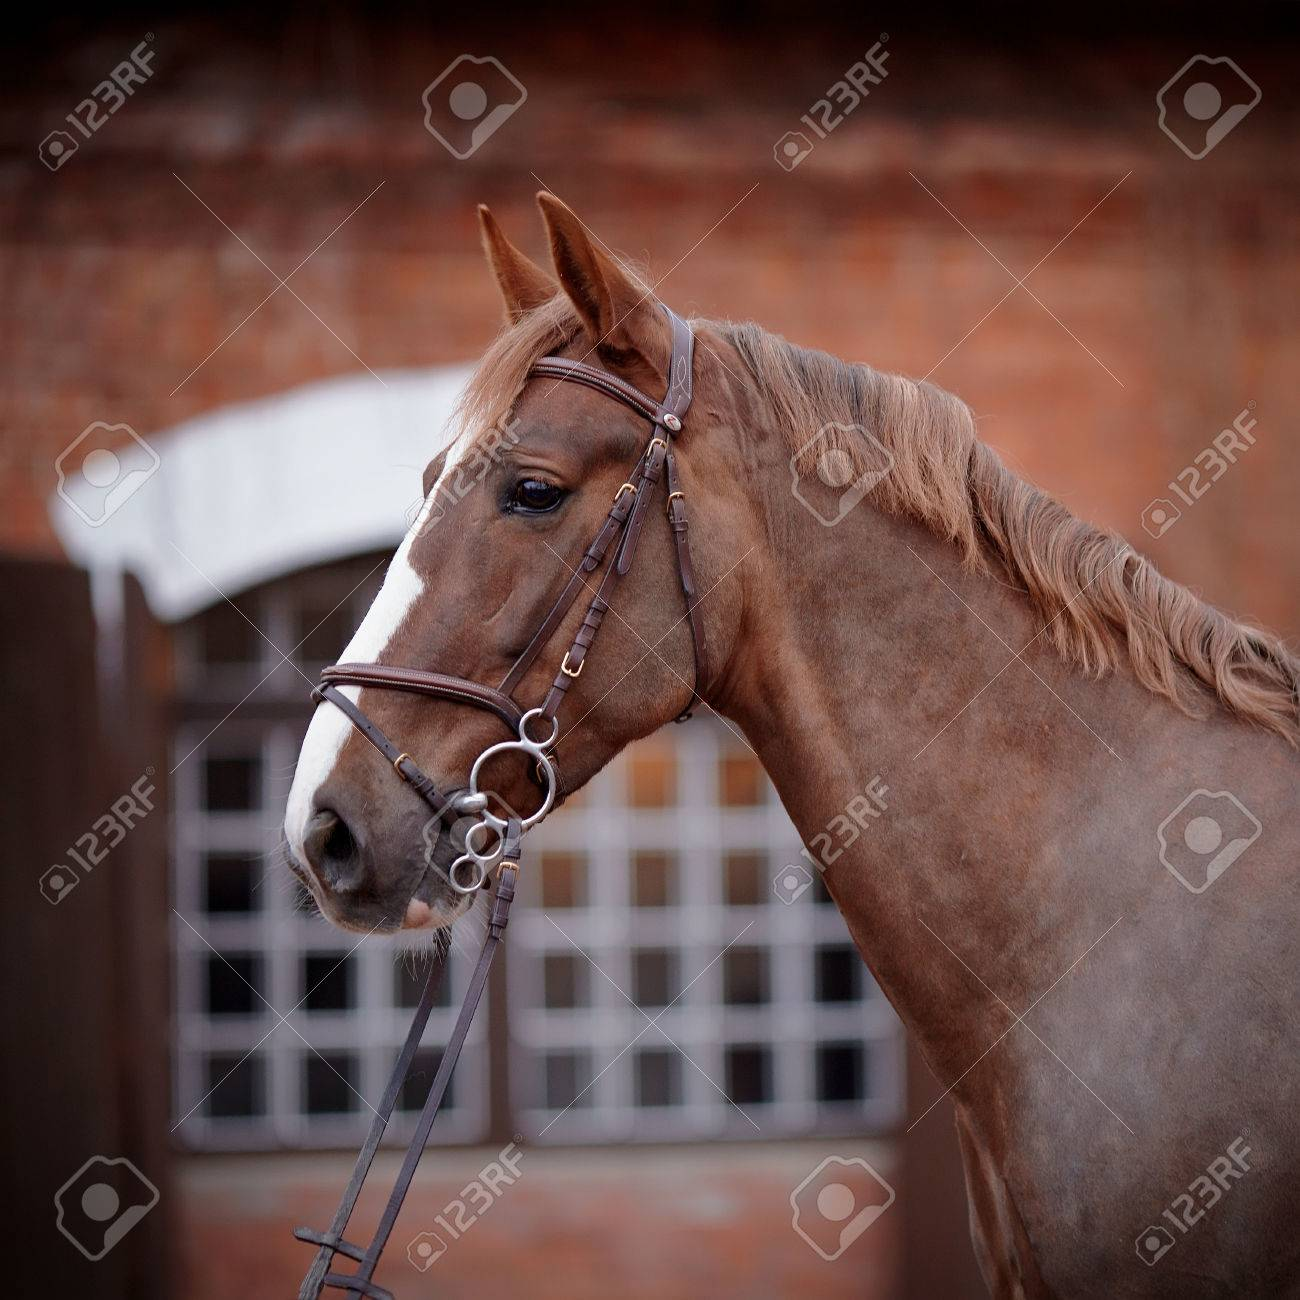 Red stallion. Portrait of a red horse. Thoroughbred horse. Beautiful horse. Sports horse. Standard-Bild - 27908470